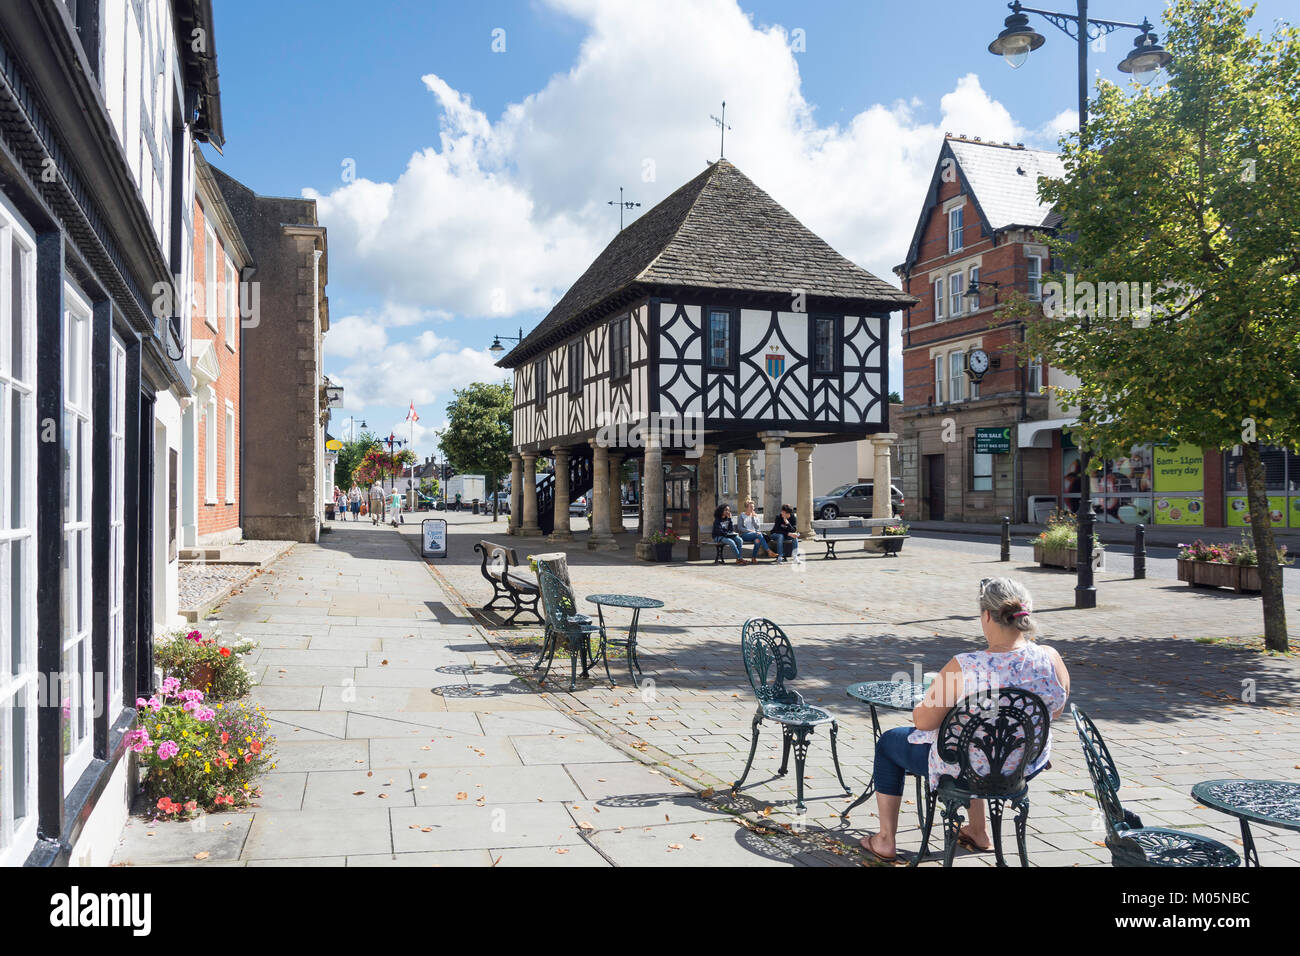 Town Hall Tea Rooms, High Street, Royal Wootton Bassett, Wiltshire, England, United Kingdom Stock Photo